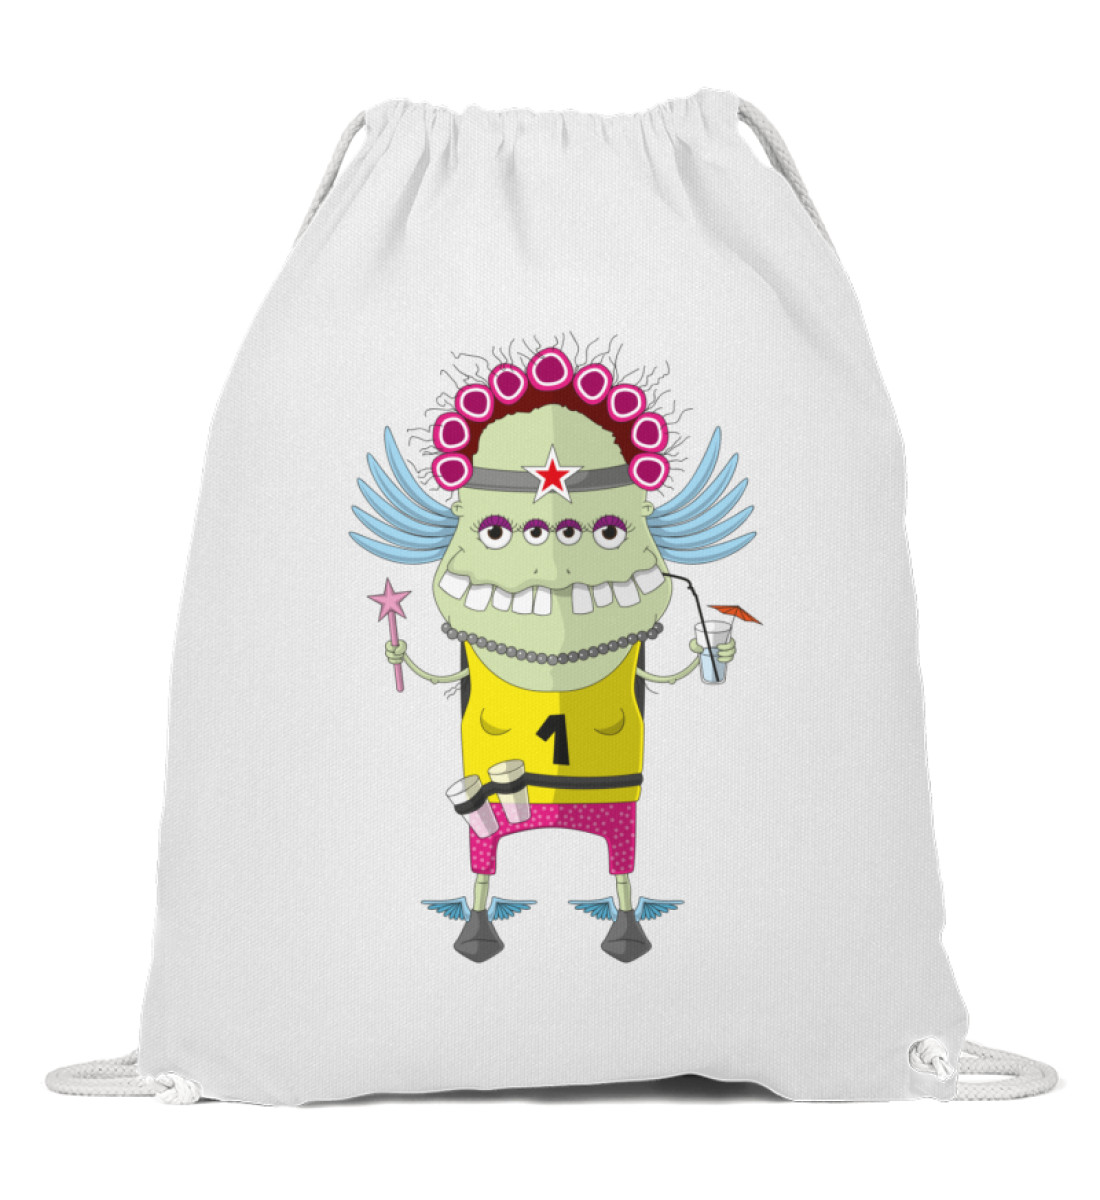 Gymsack - Muddy berlin-monster-art berlinmonsterart sport tasche